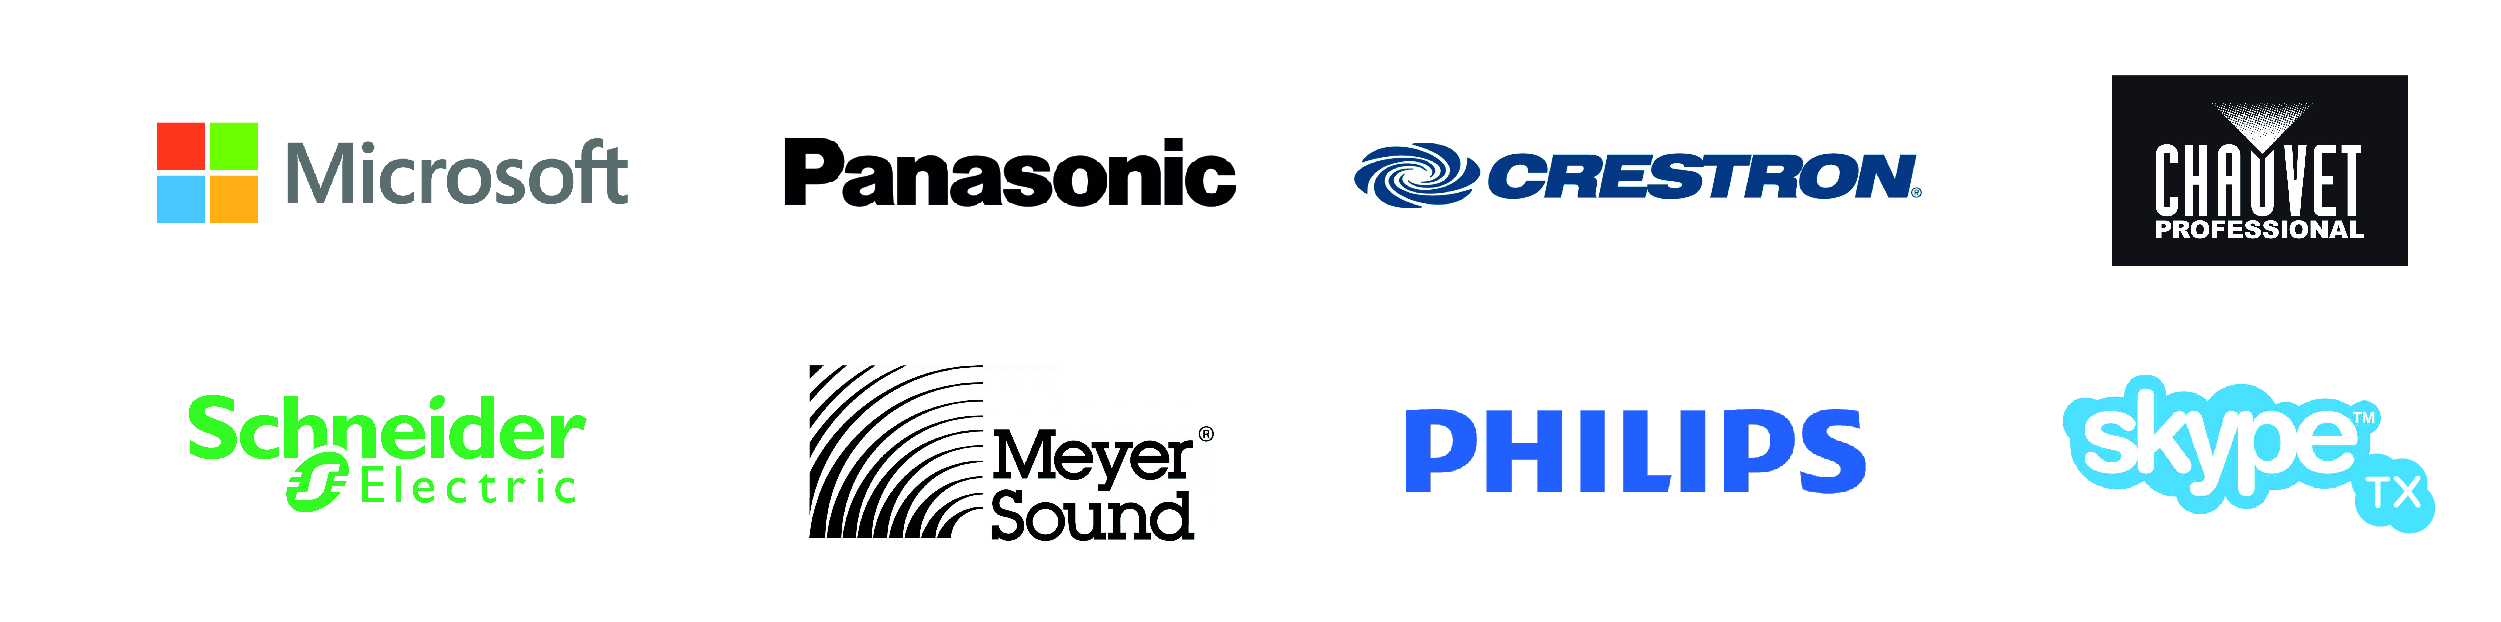 R&W Venue Technologies brand partners for design audio and sound installation service